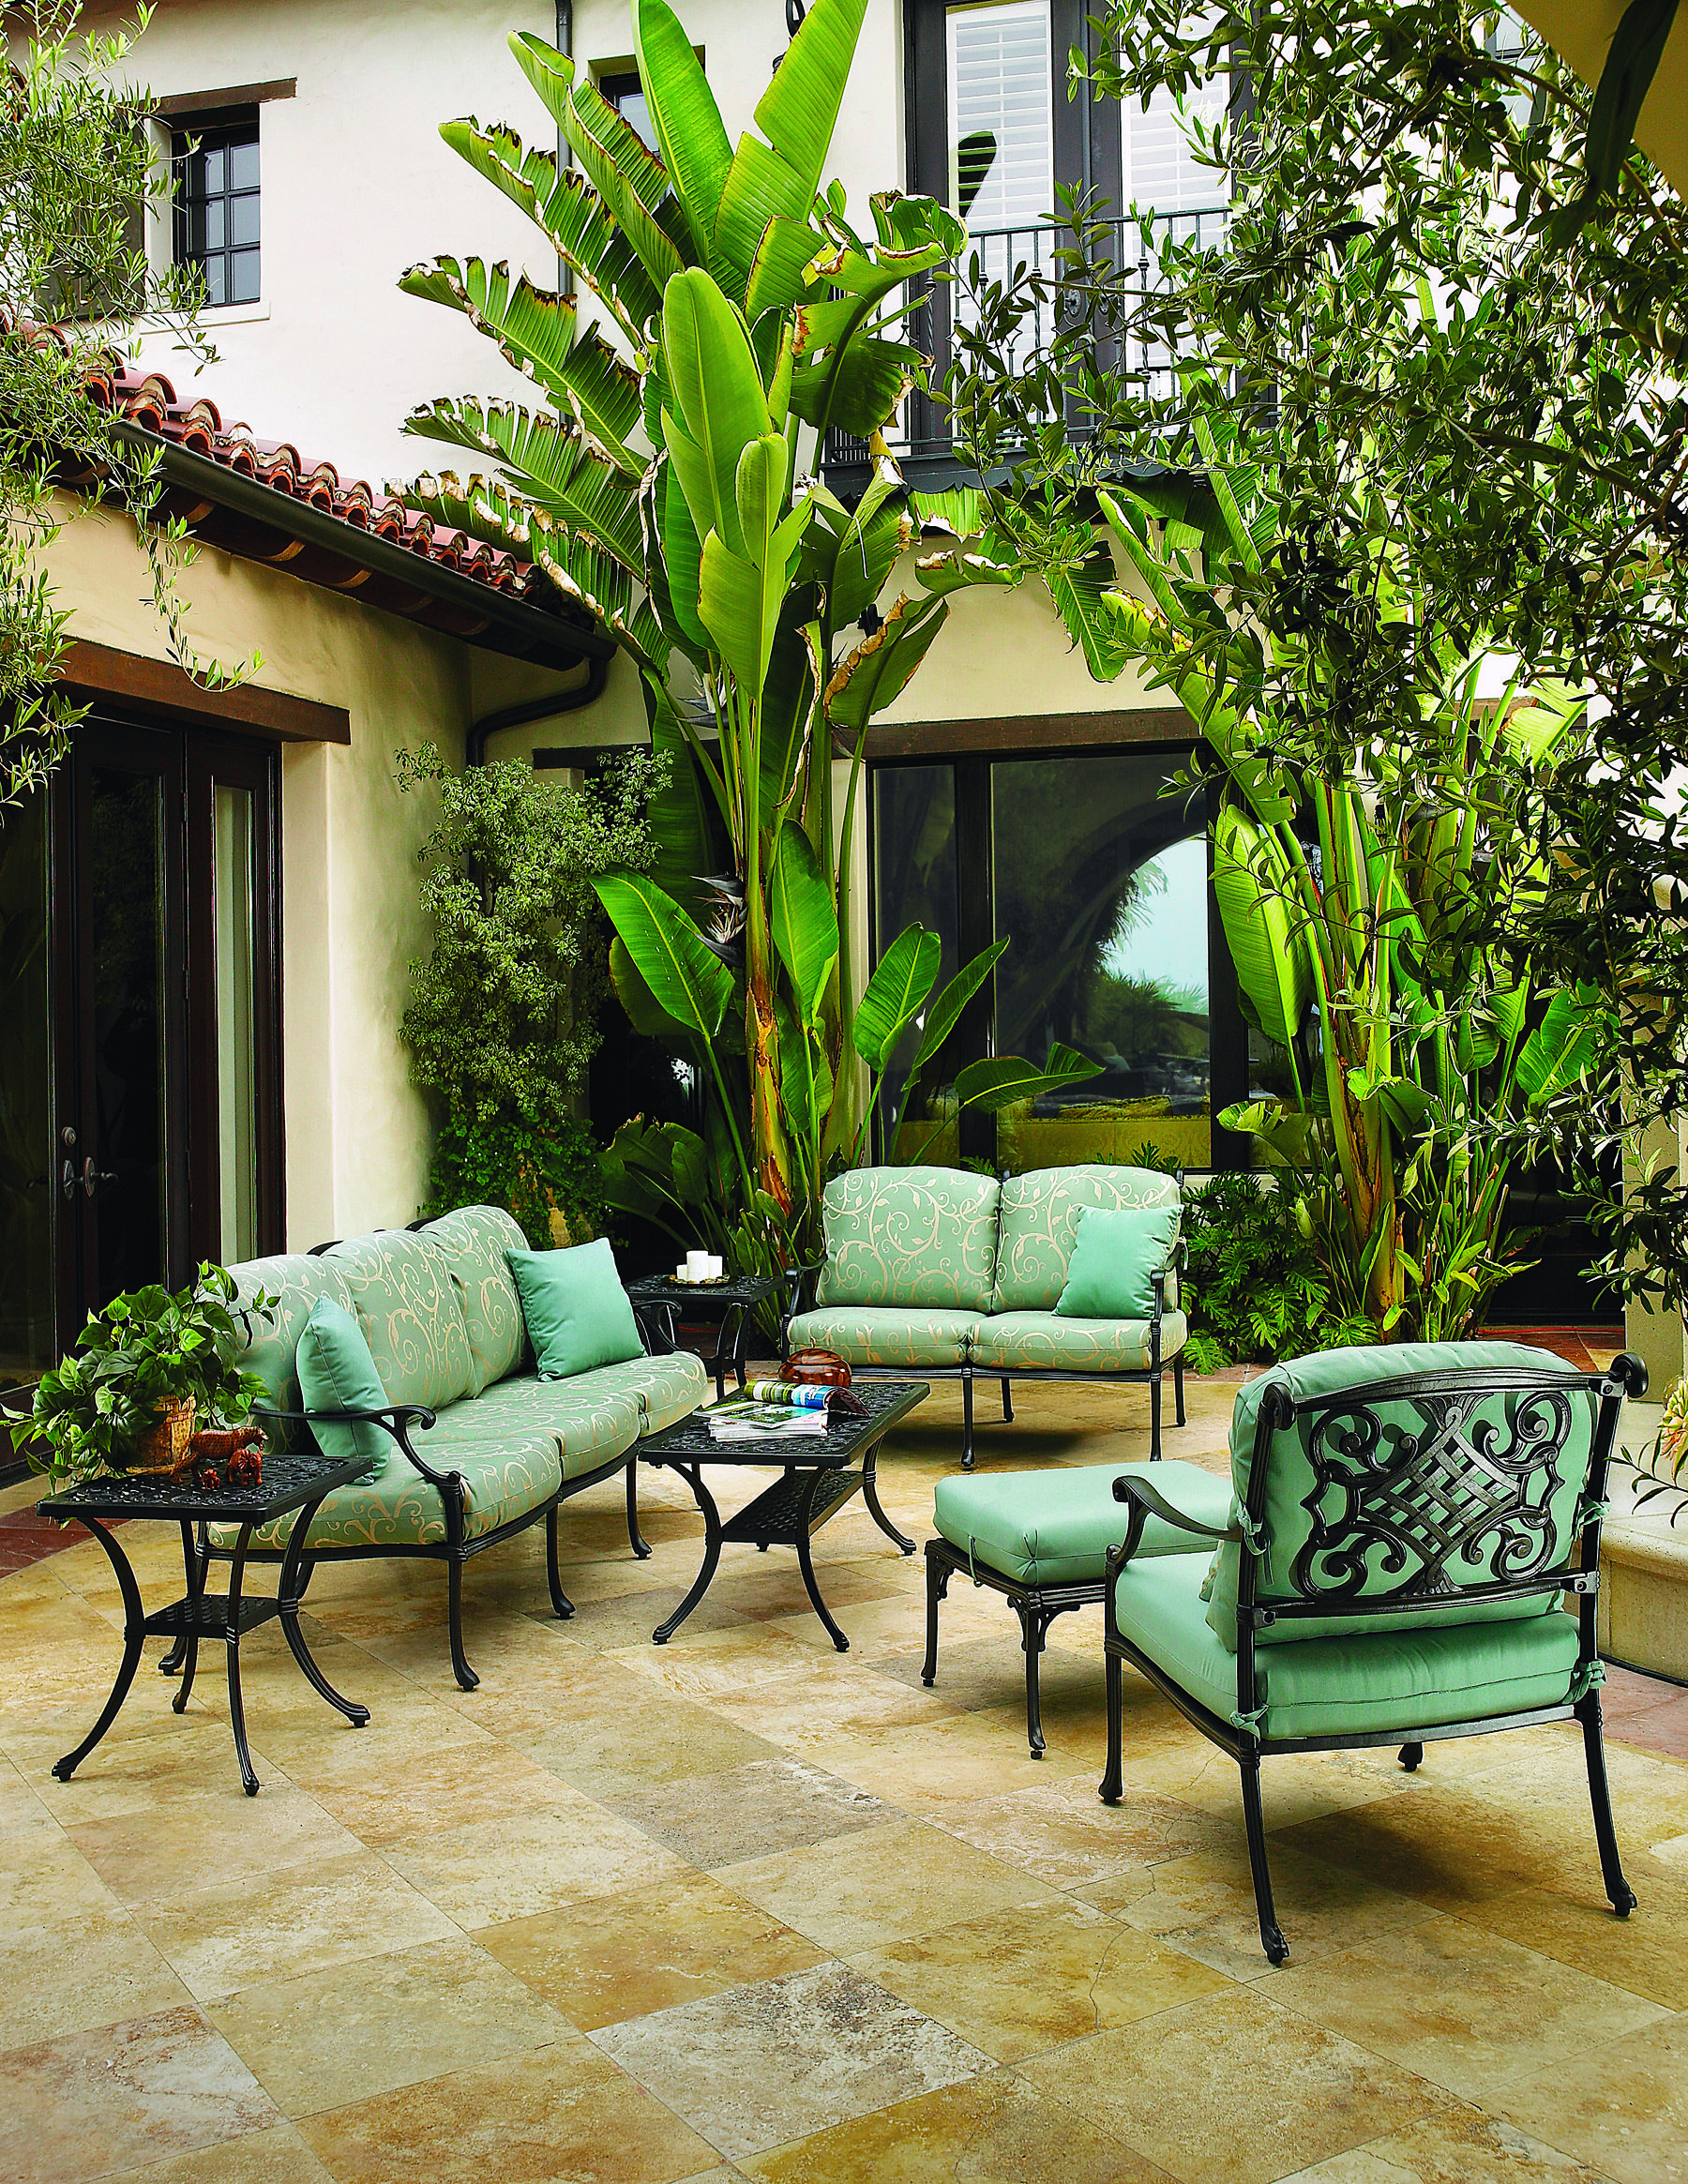 Ordinaire Elegant, Timeless, And Oh, So Comfortable, The Michigan Deep Seating  Collection From Gensun Casual Living With Sunbrella Outdoor Upholstery.